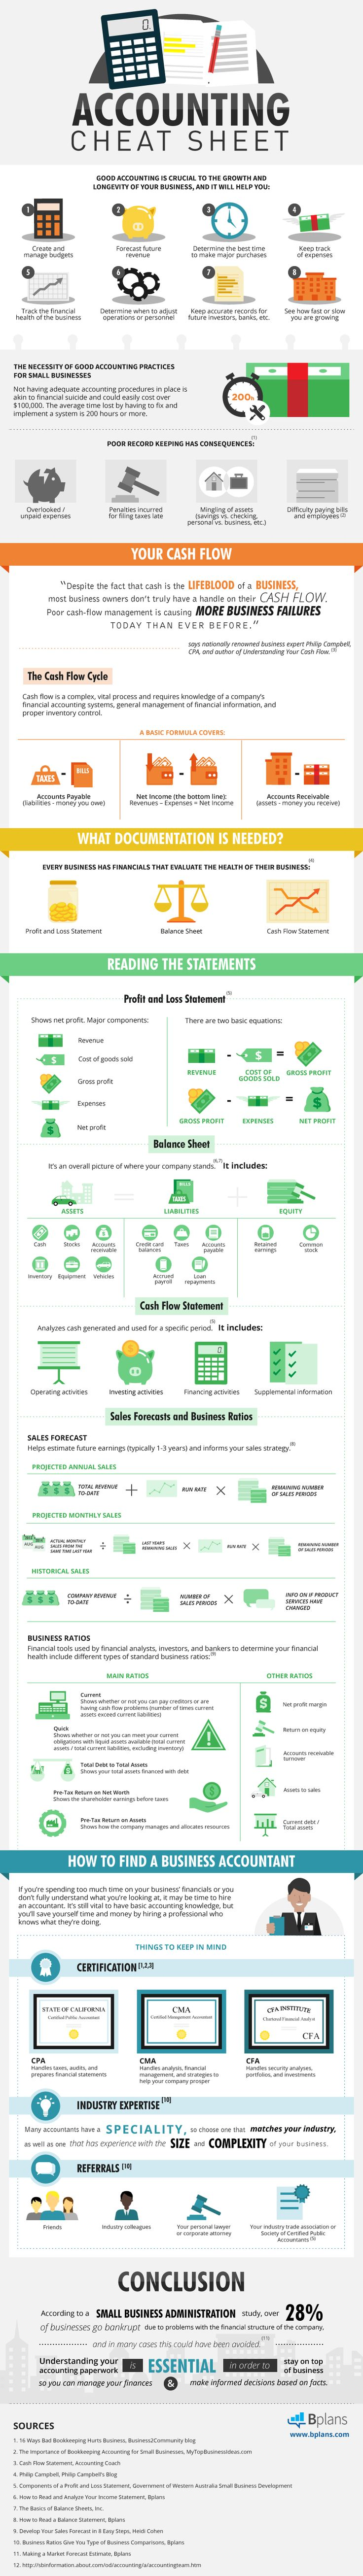 Our infographic will guide you through the essential documents you need, including helpful tips on finding an accountant for your small business.  According to a study undertaken by the Small Business Administration, 28 percent of companies go bankrupt due to problems with the financial structure of the company. Many of these problems could be avoided by following good accounting practices.  Keeping a record of your financial details IS important to the livelihood of your business.